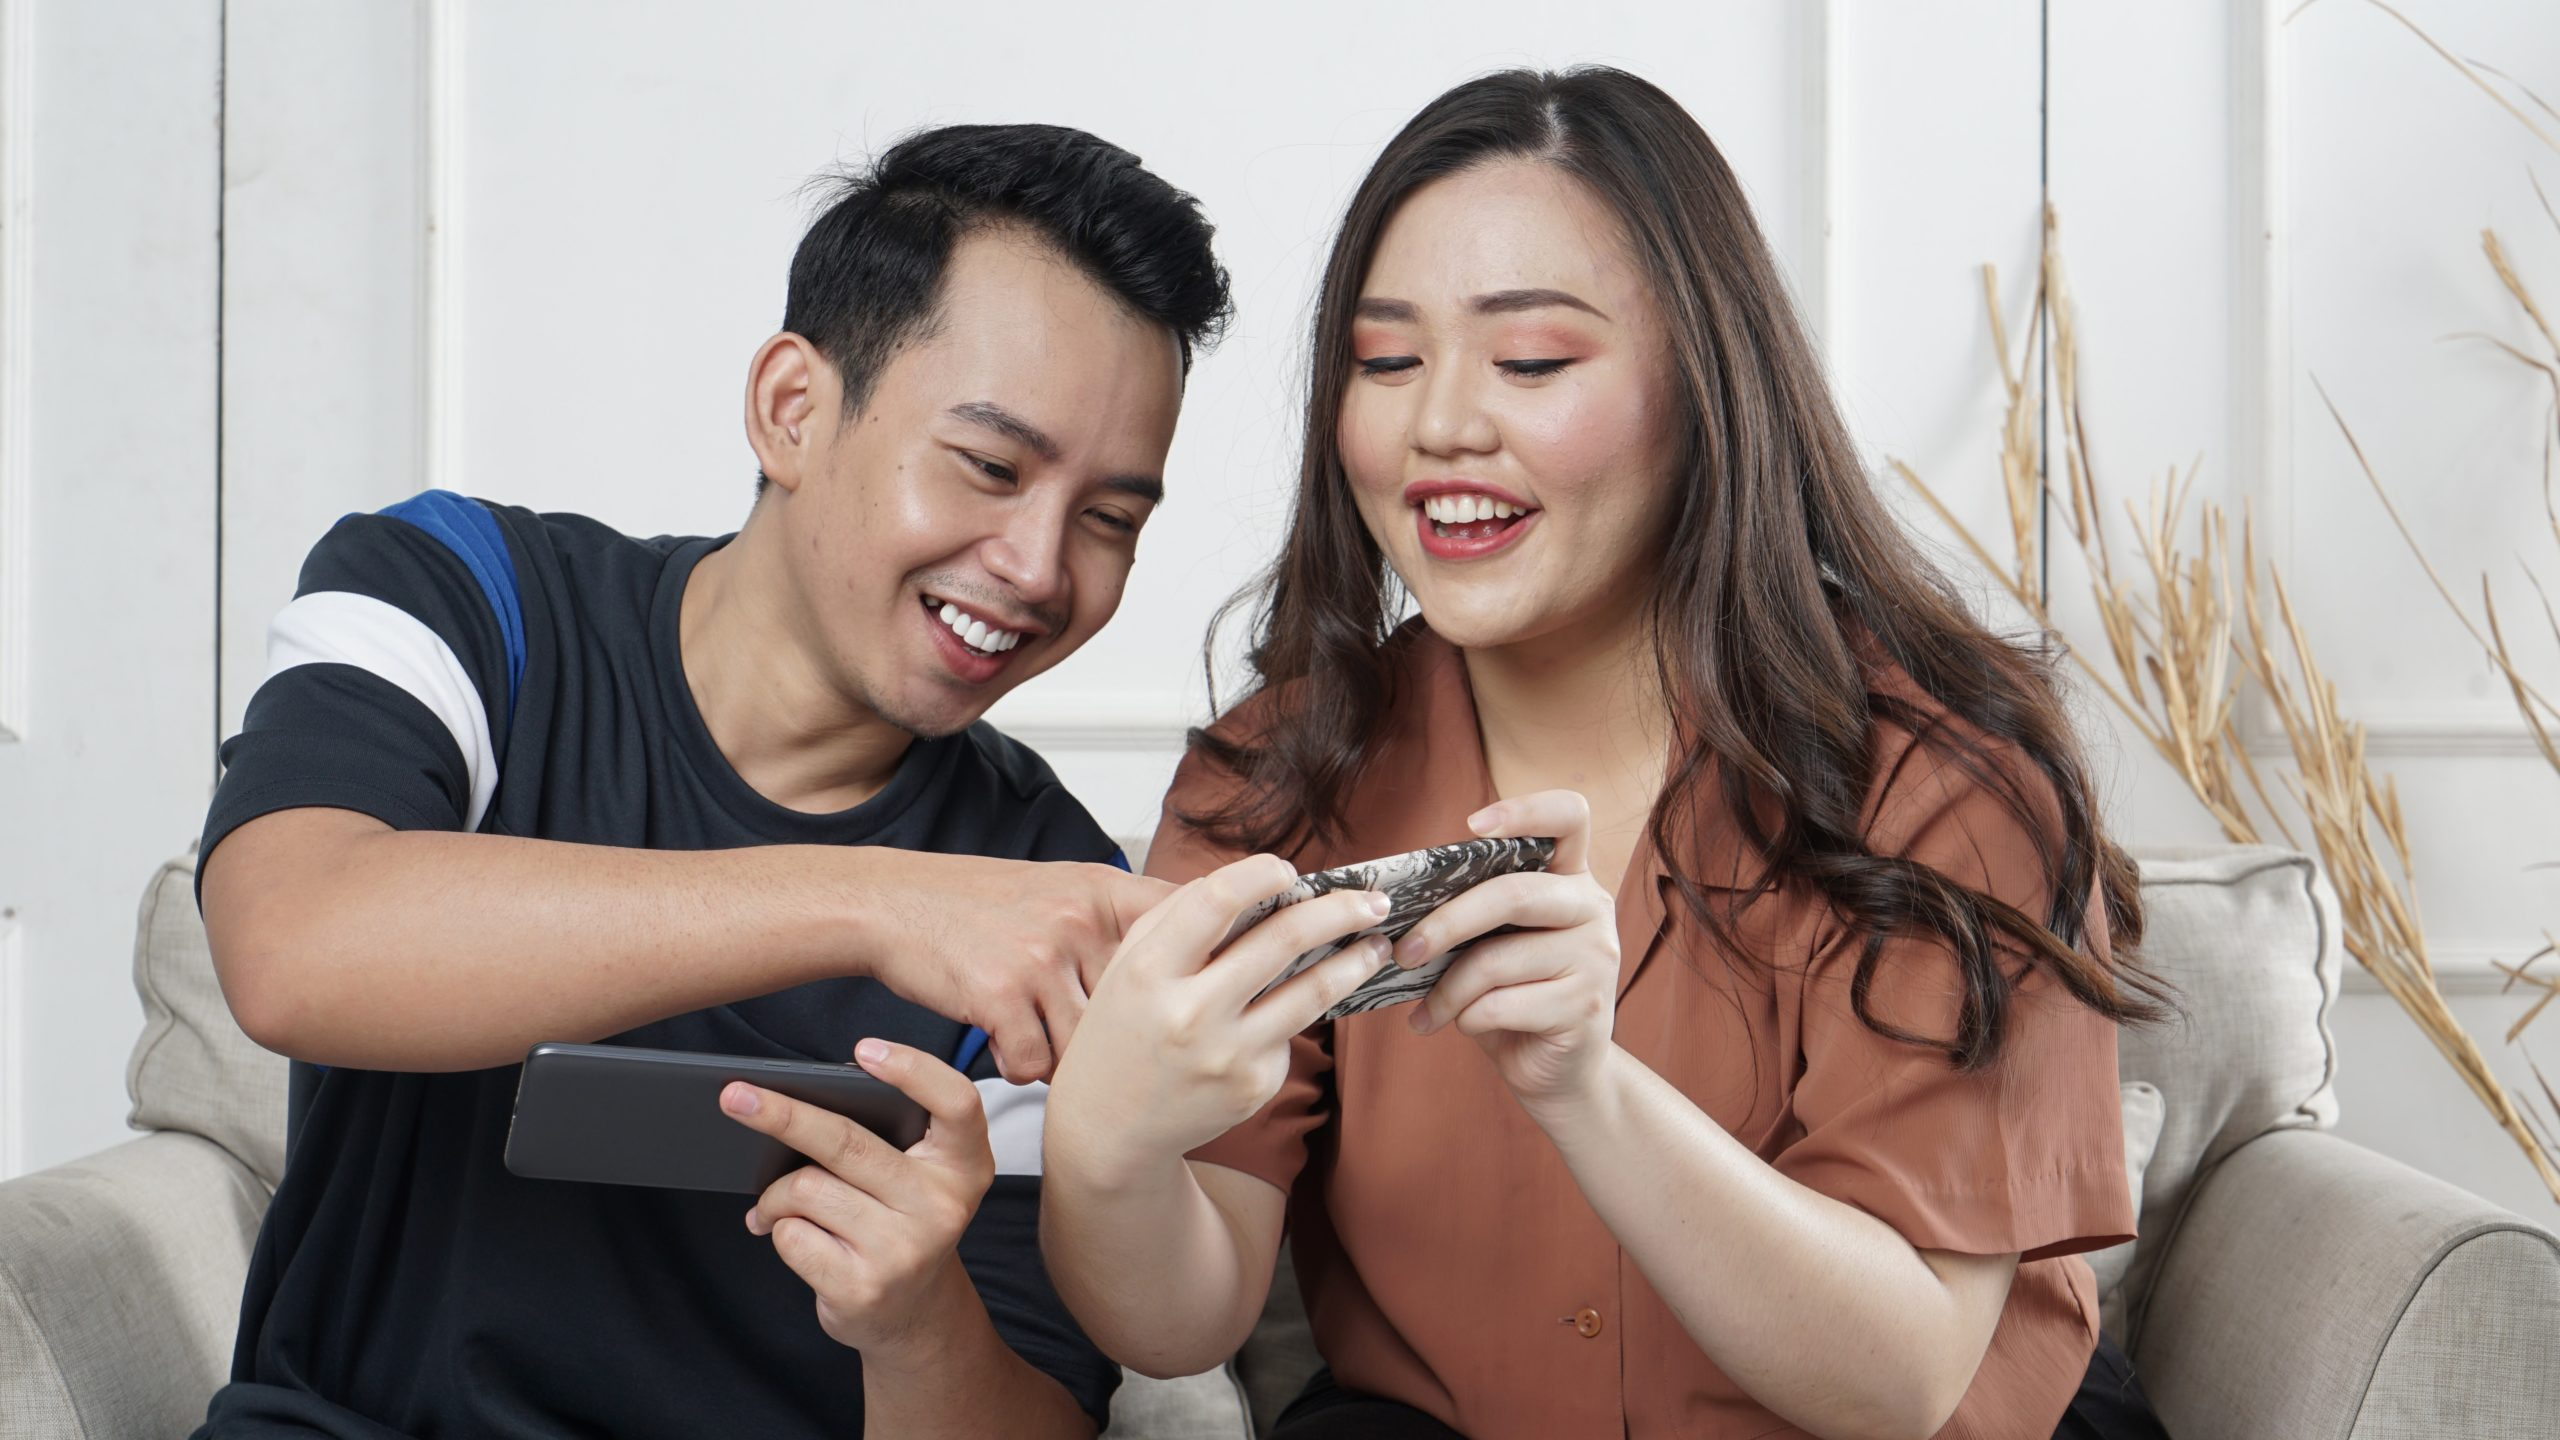 A young man and woman laughing at their phones